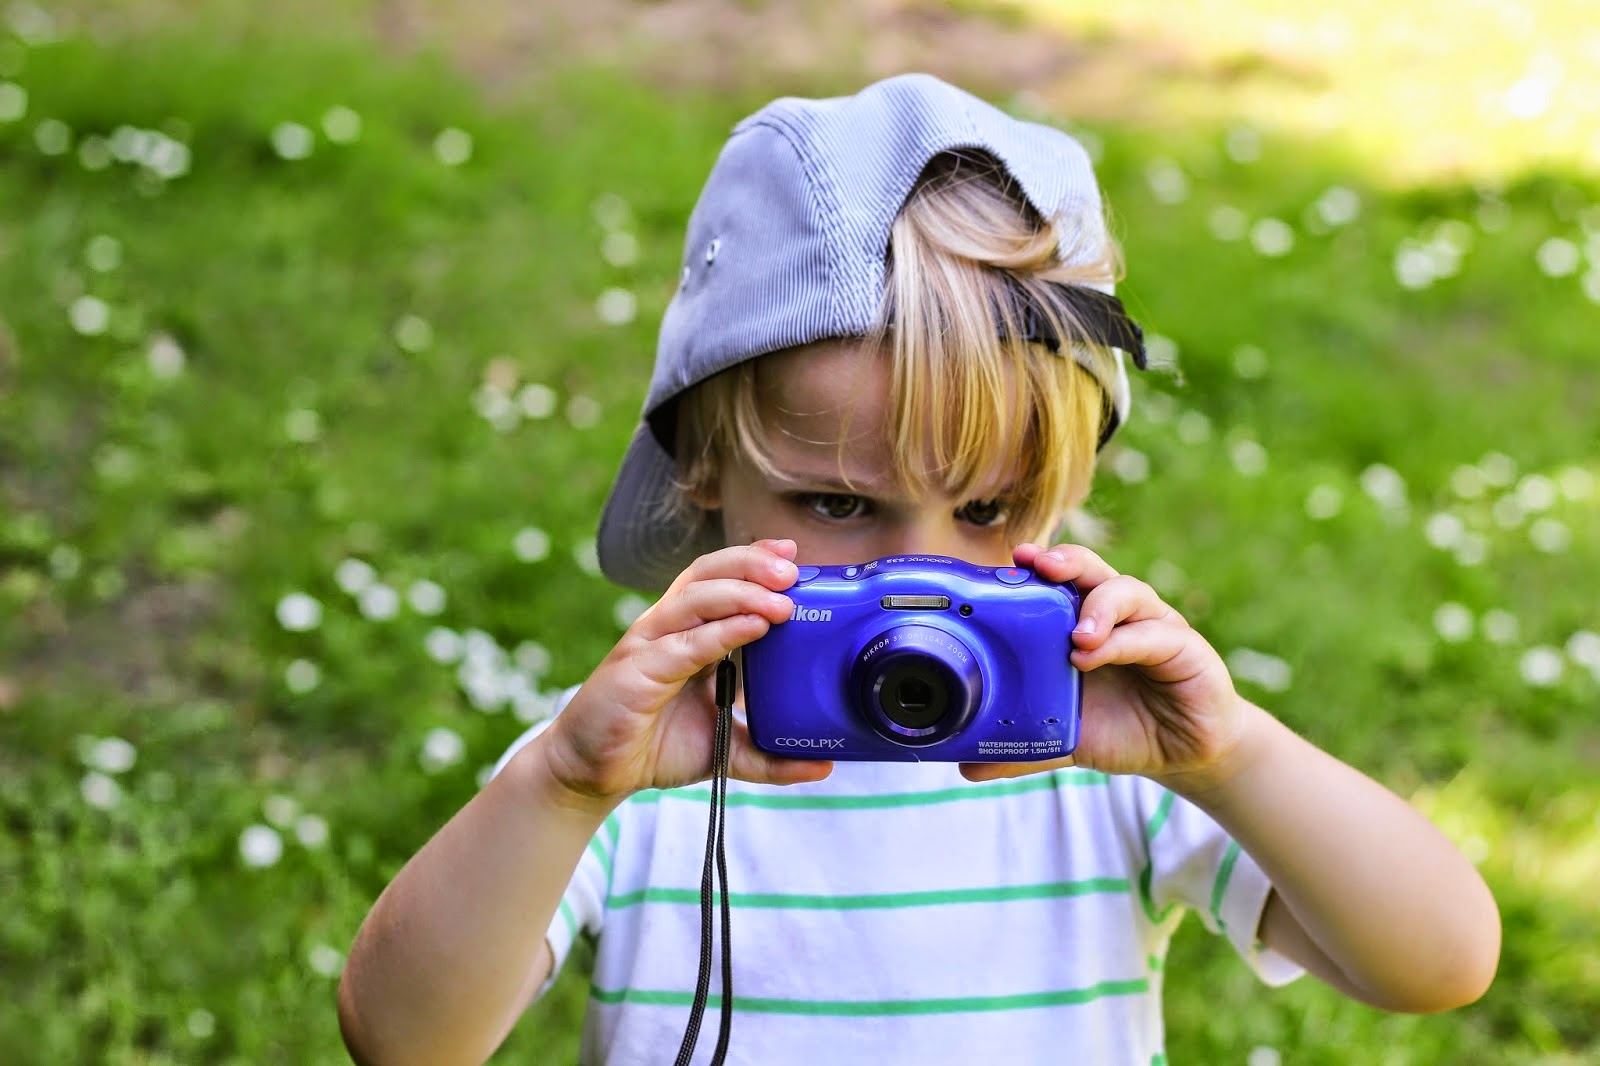 kids learning photography